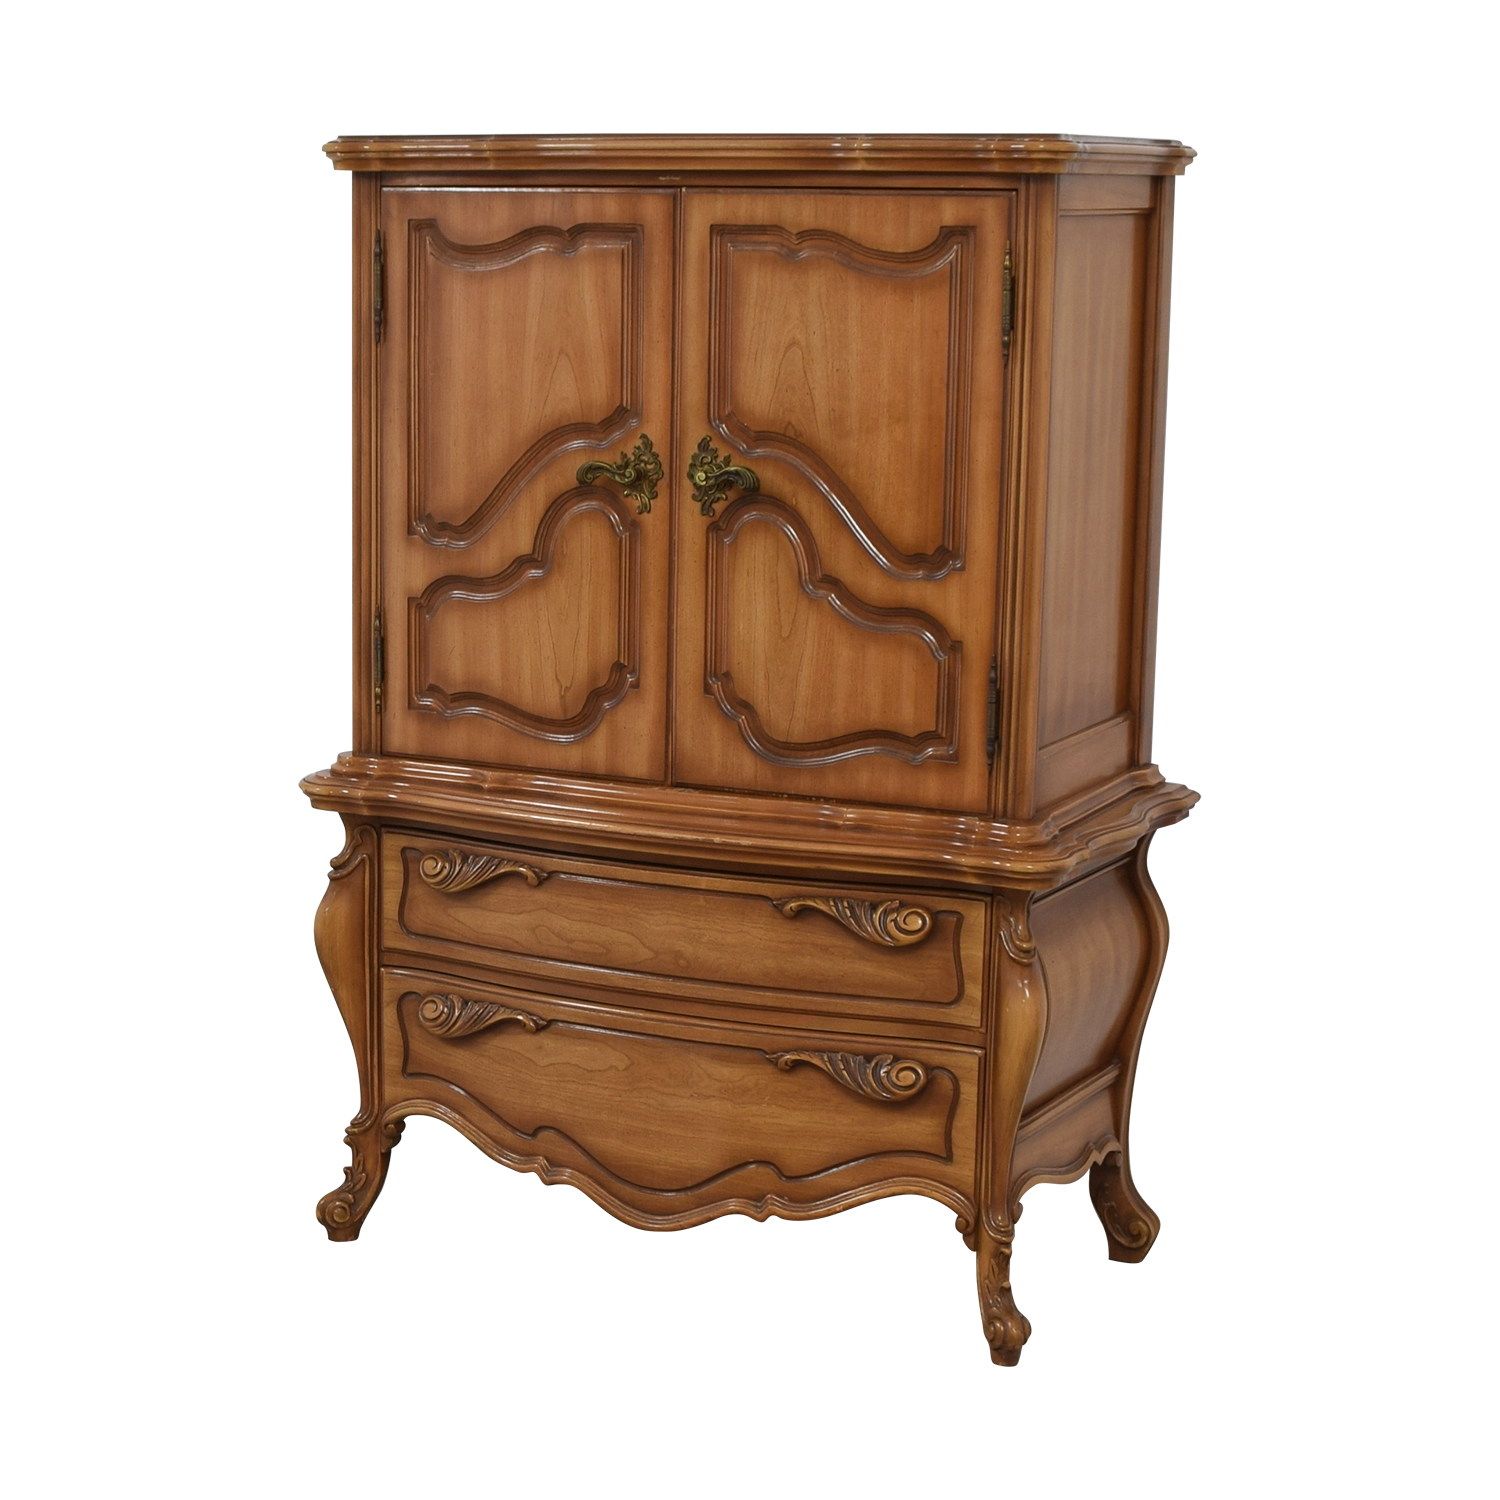 Dovetailed Carved Wood Chest of Drawers Armoire coupon